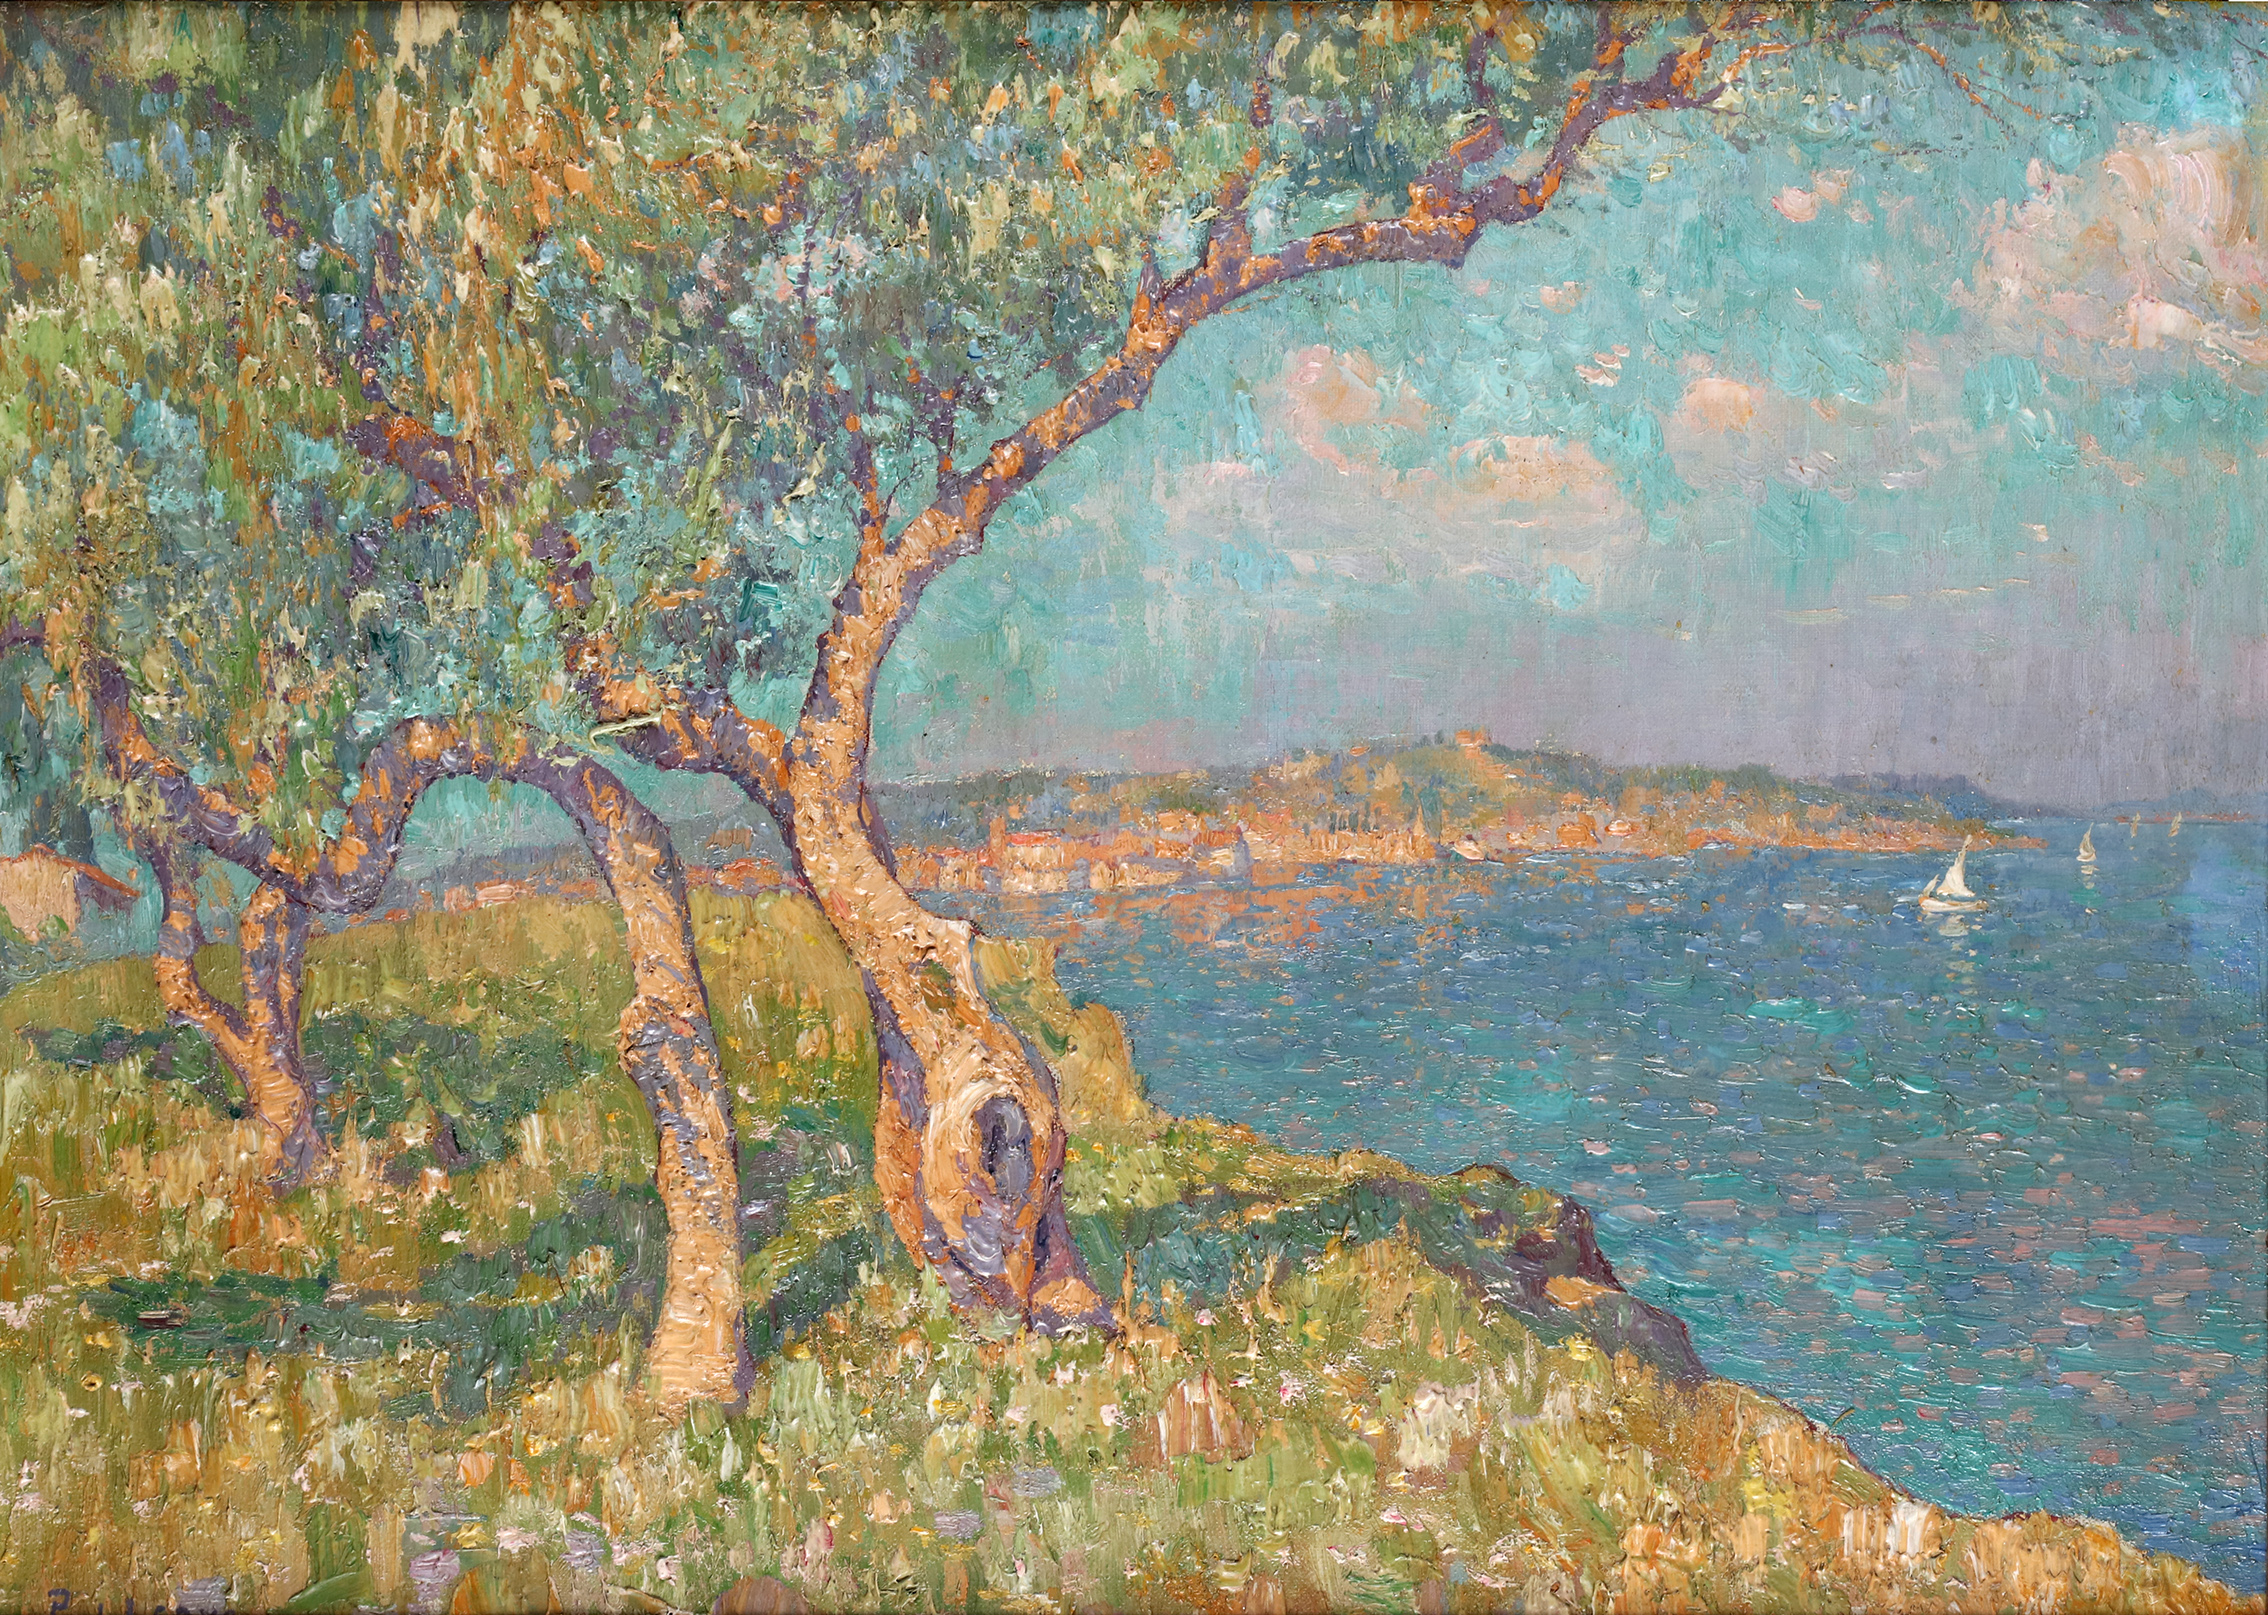 A panoramic view of Saint-Tropez